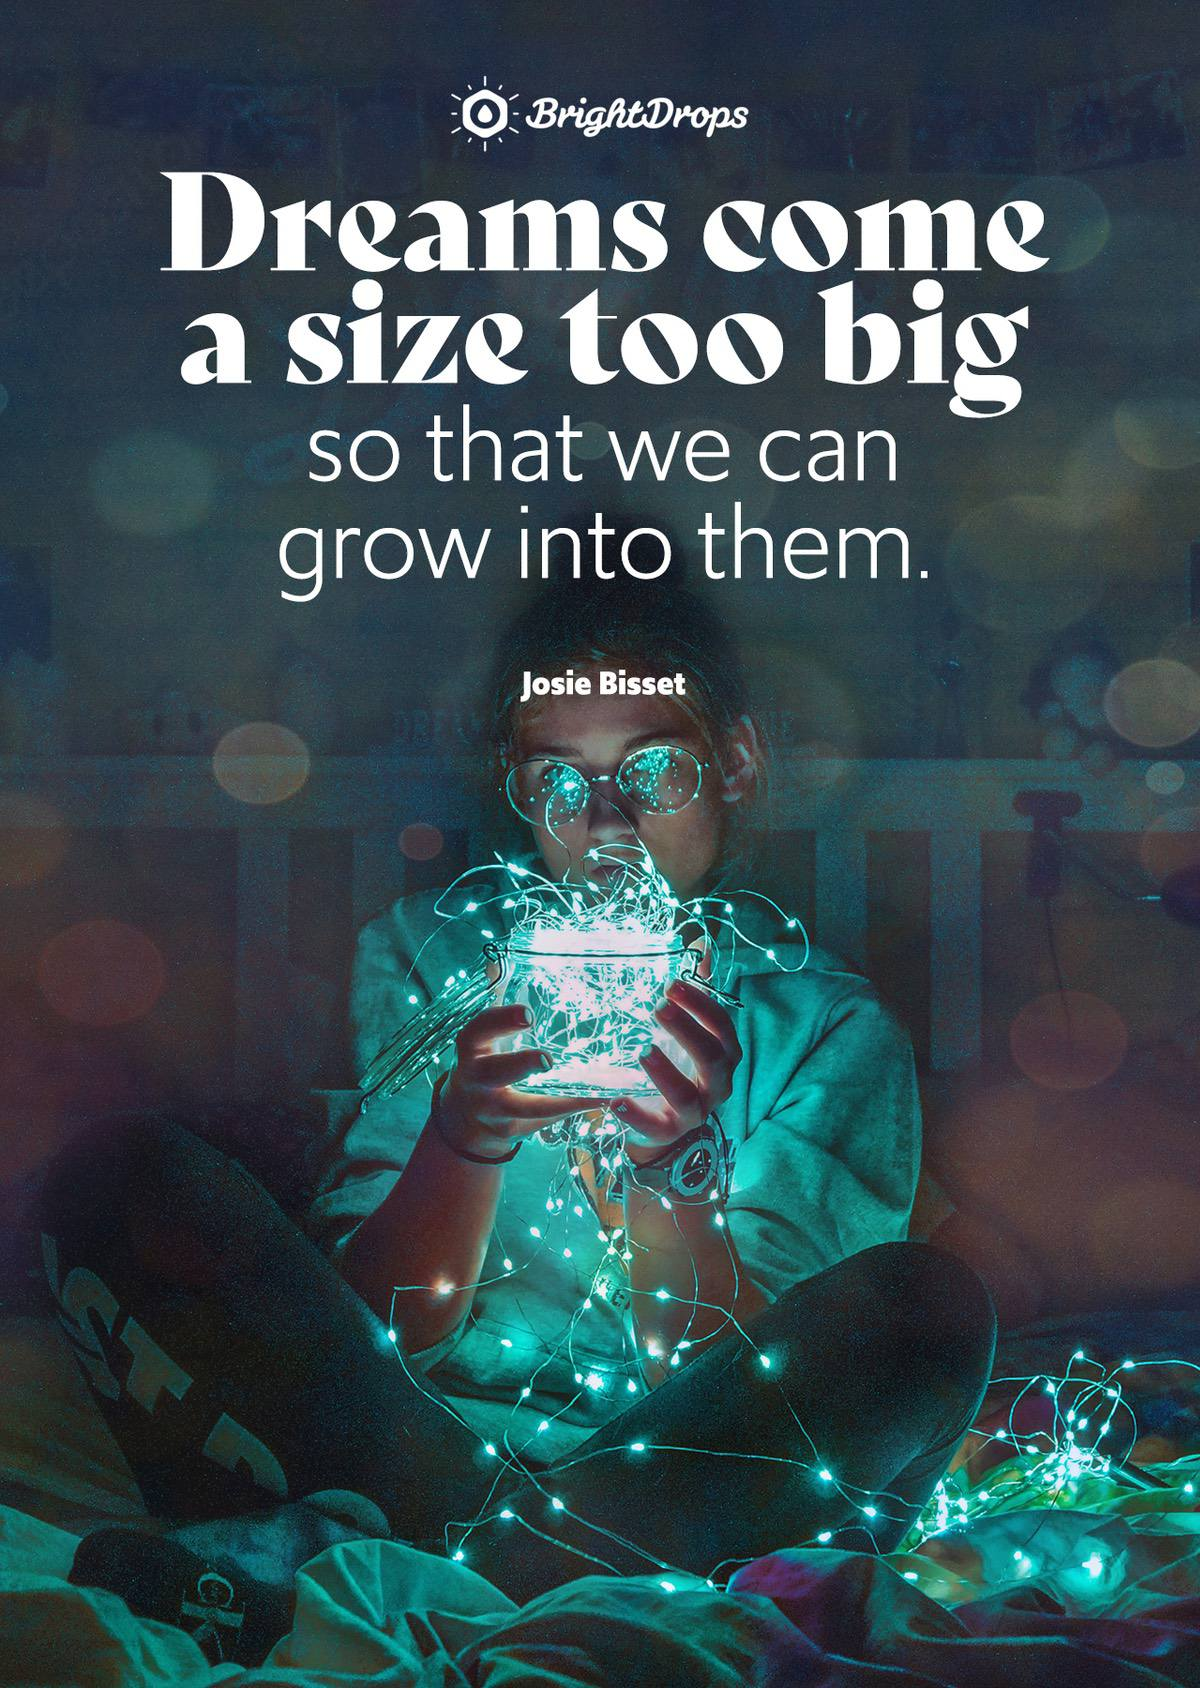 Dreams come a size too big so that we can grow into them. - Josie Bisset